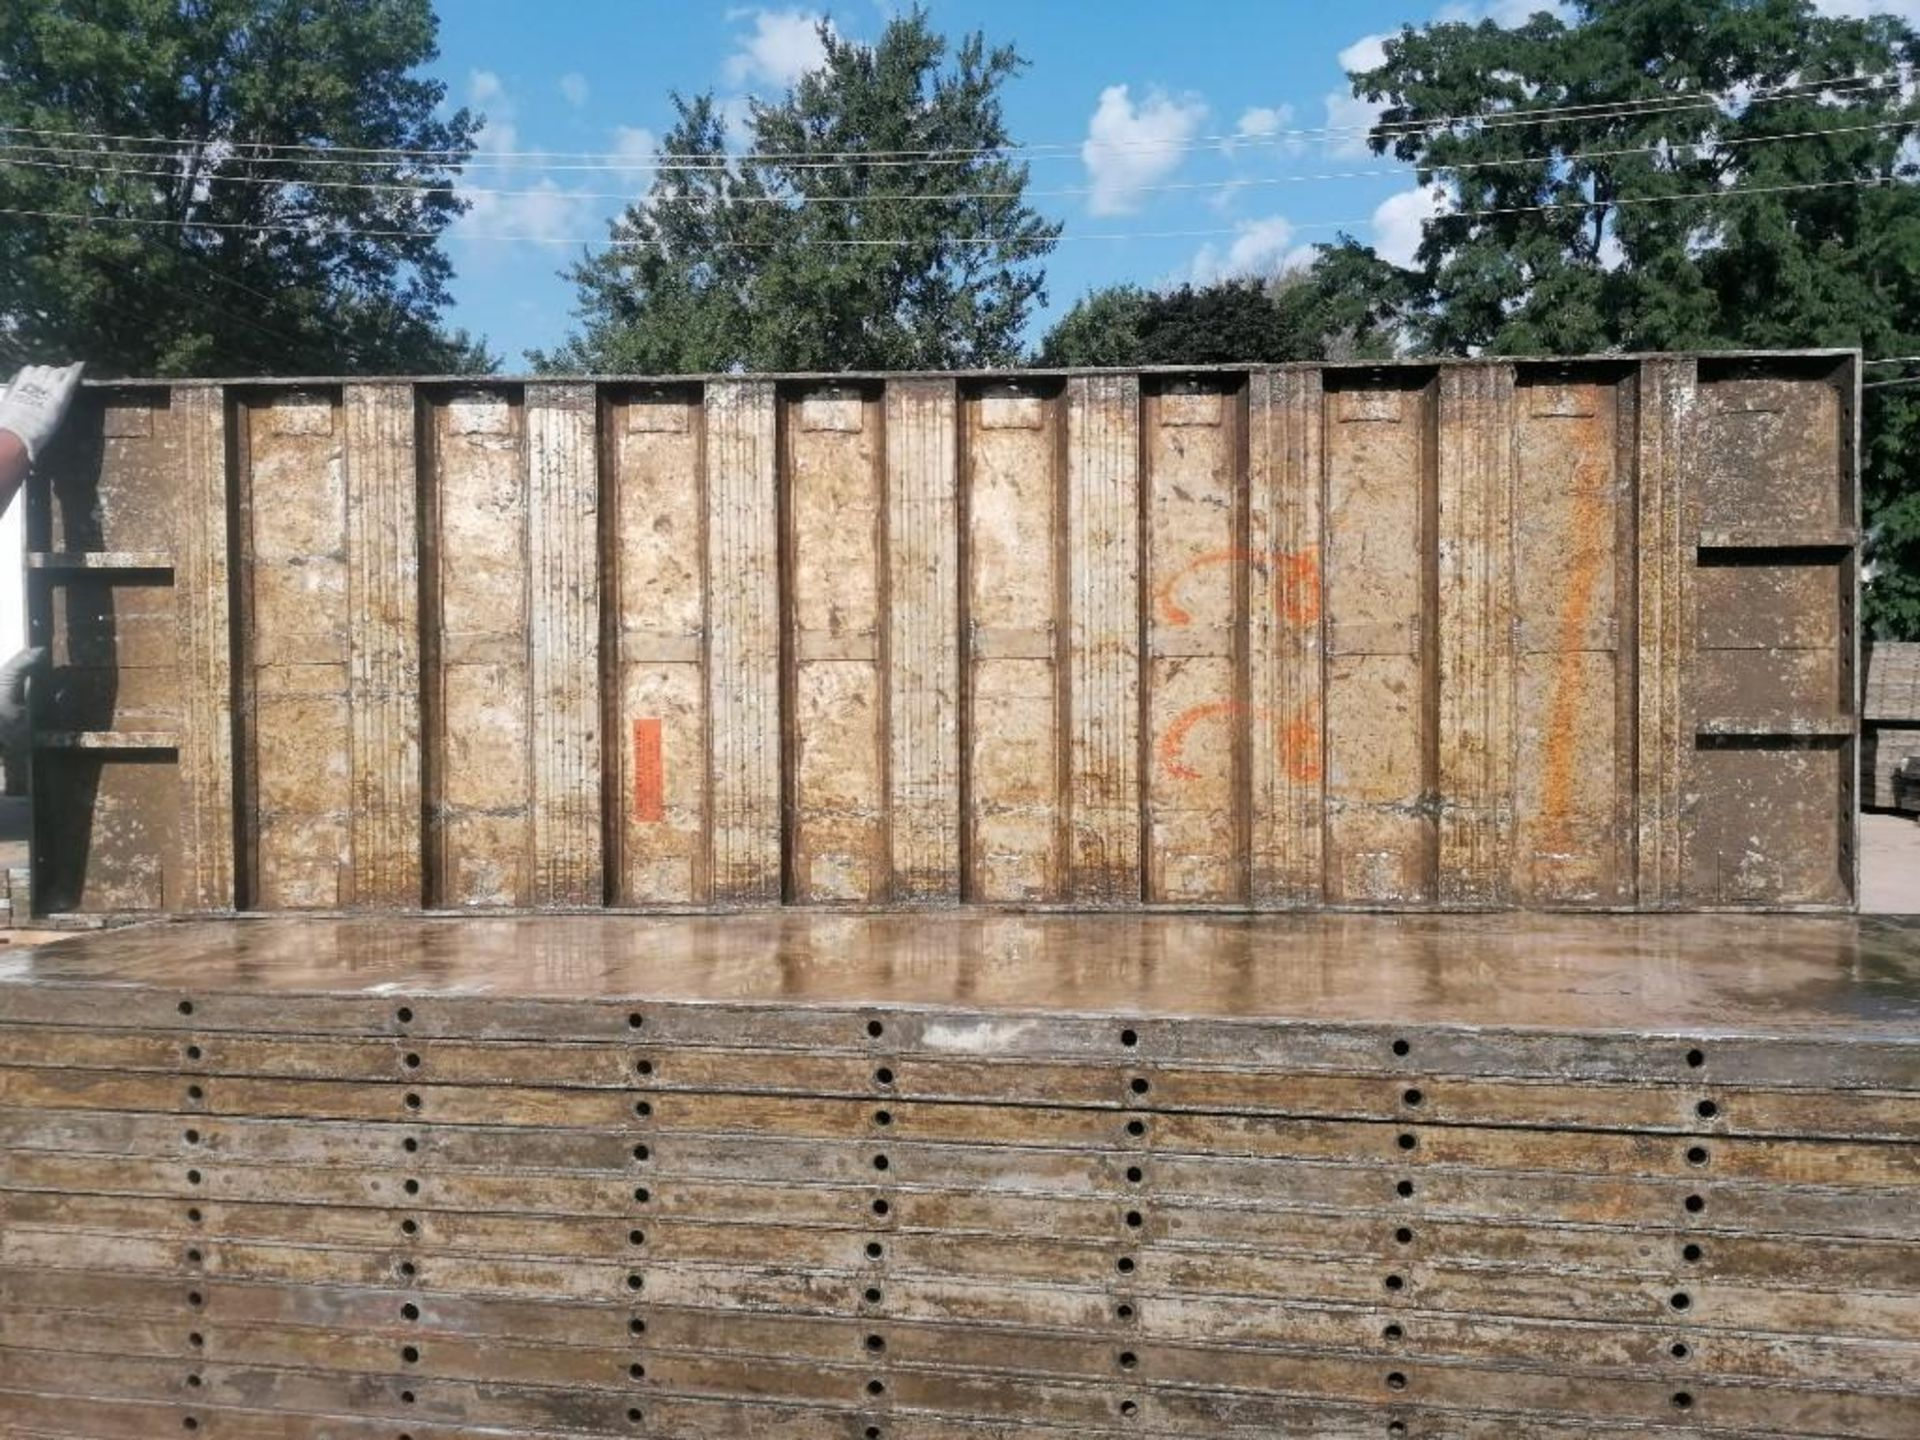 Lot 124 - (20) 3' x 10' Wall-Ties Aluminum Concrete Forms, Smooth 6-12 Hole Pattern. Located at 301 E Henry